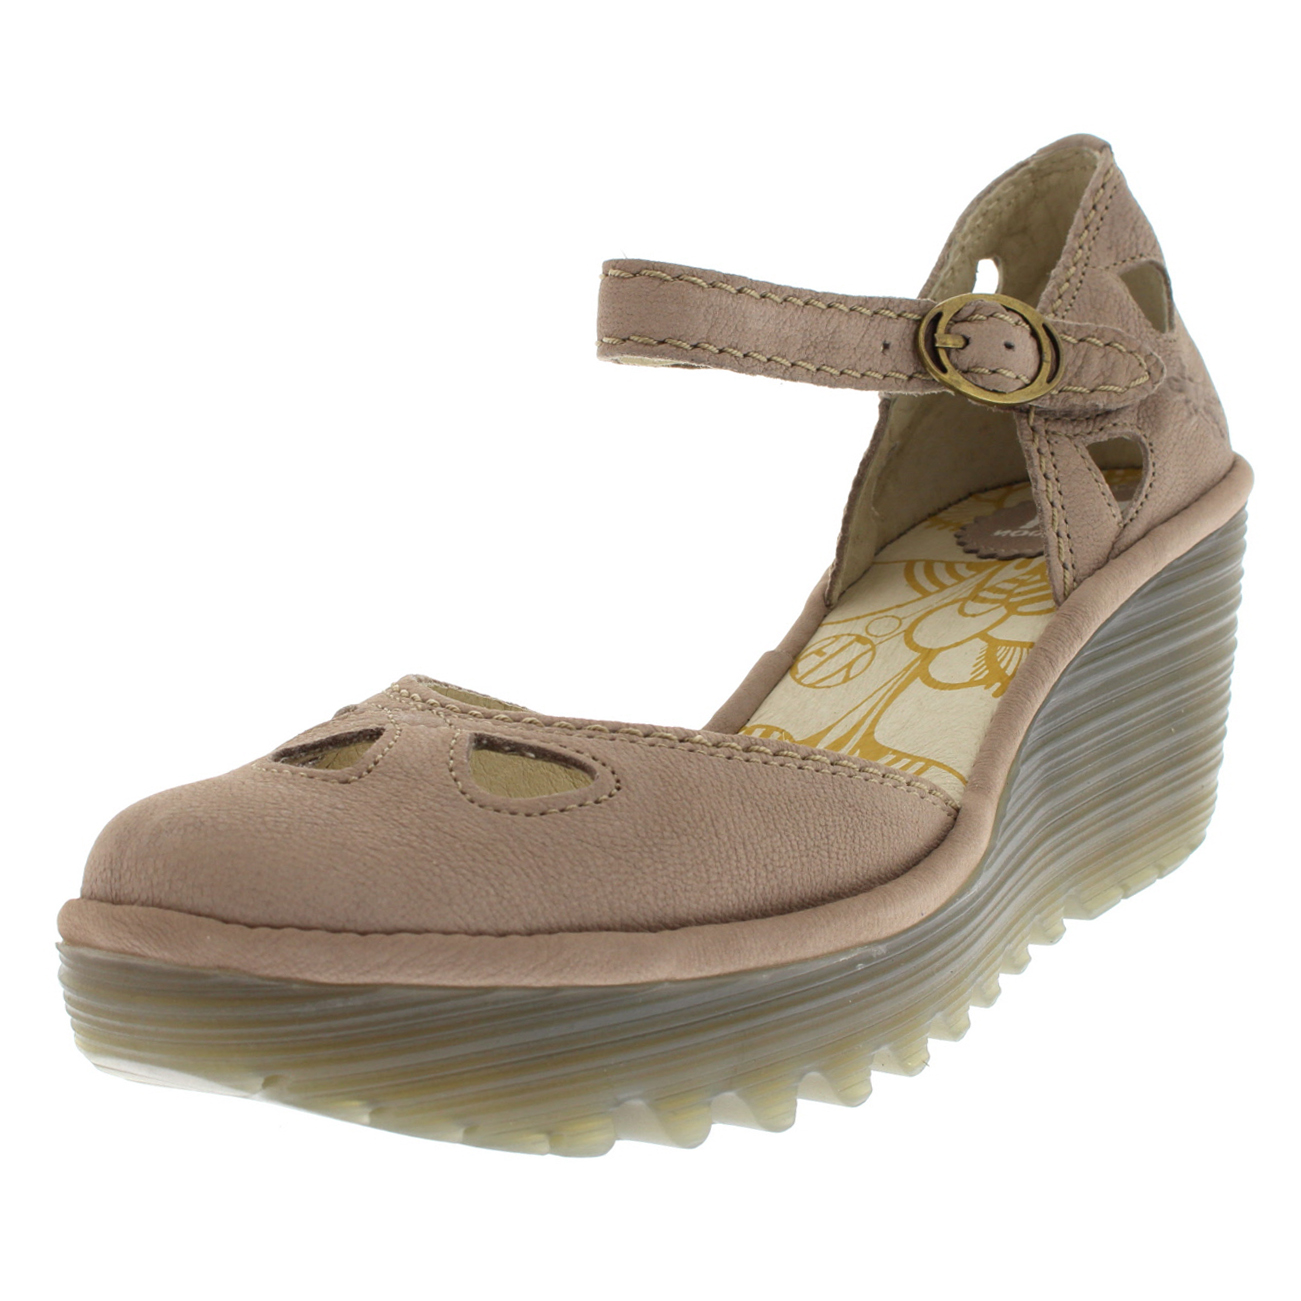 Womens Fly London Yuna Cupido Sandals Leather Wedge Heel Summer Sandals Cupido Shoes d96688